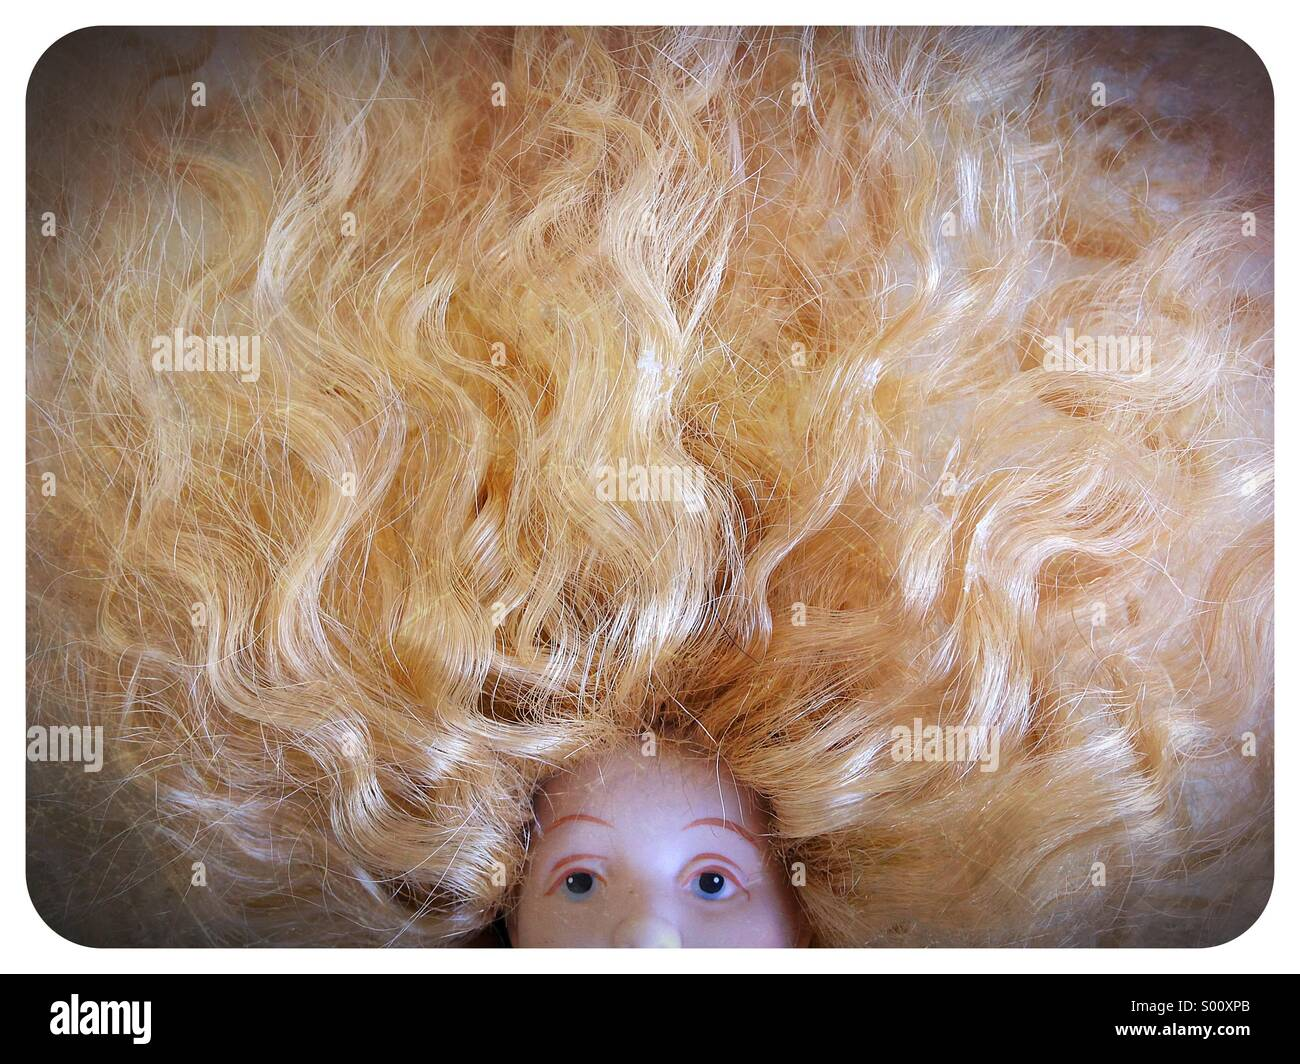 A doll with lots of hair. - Stock Image